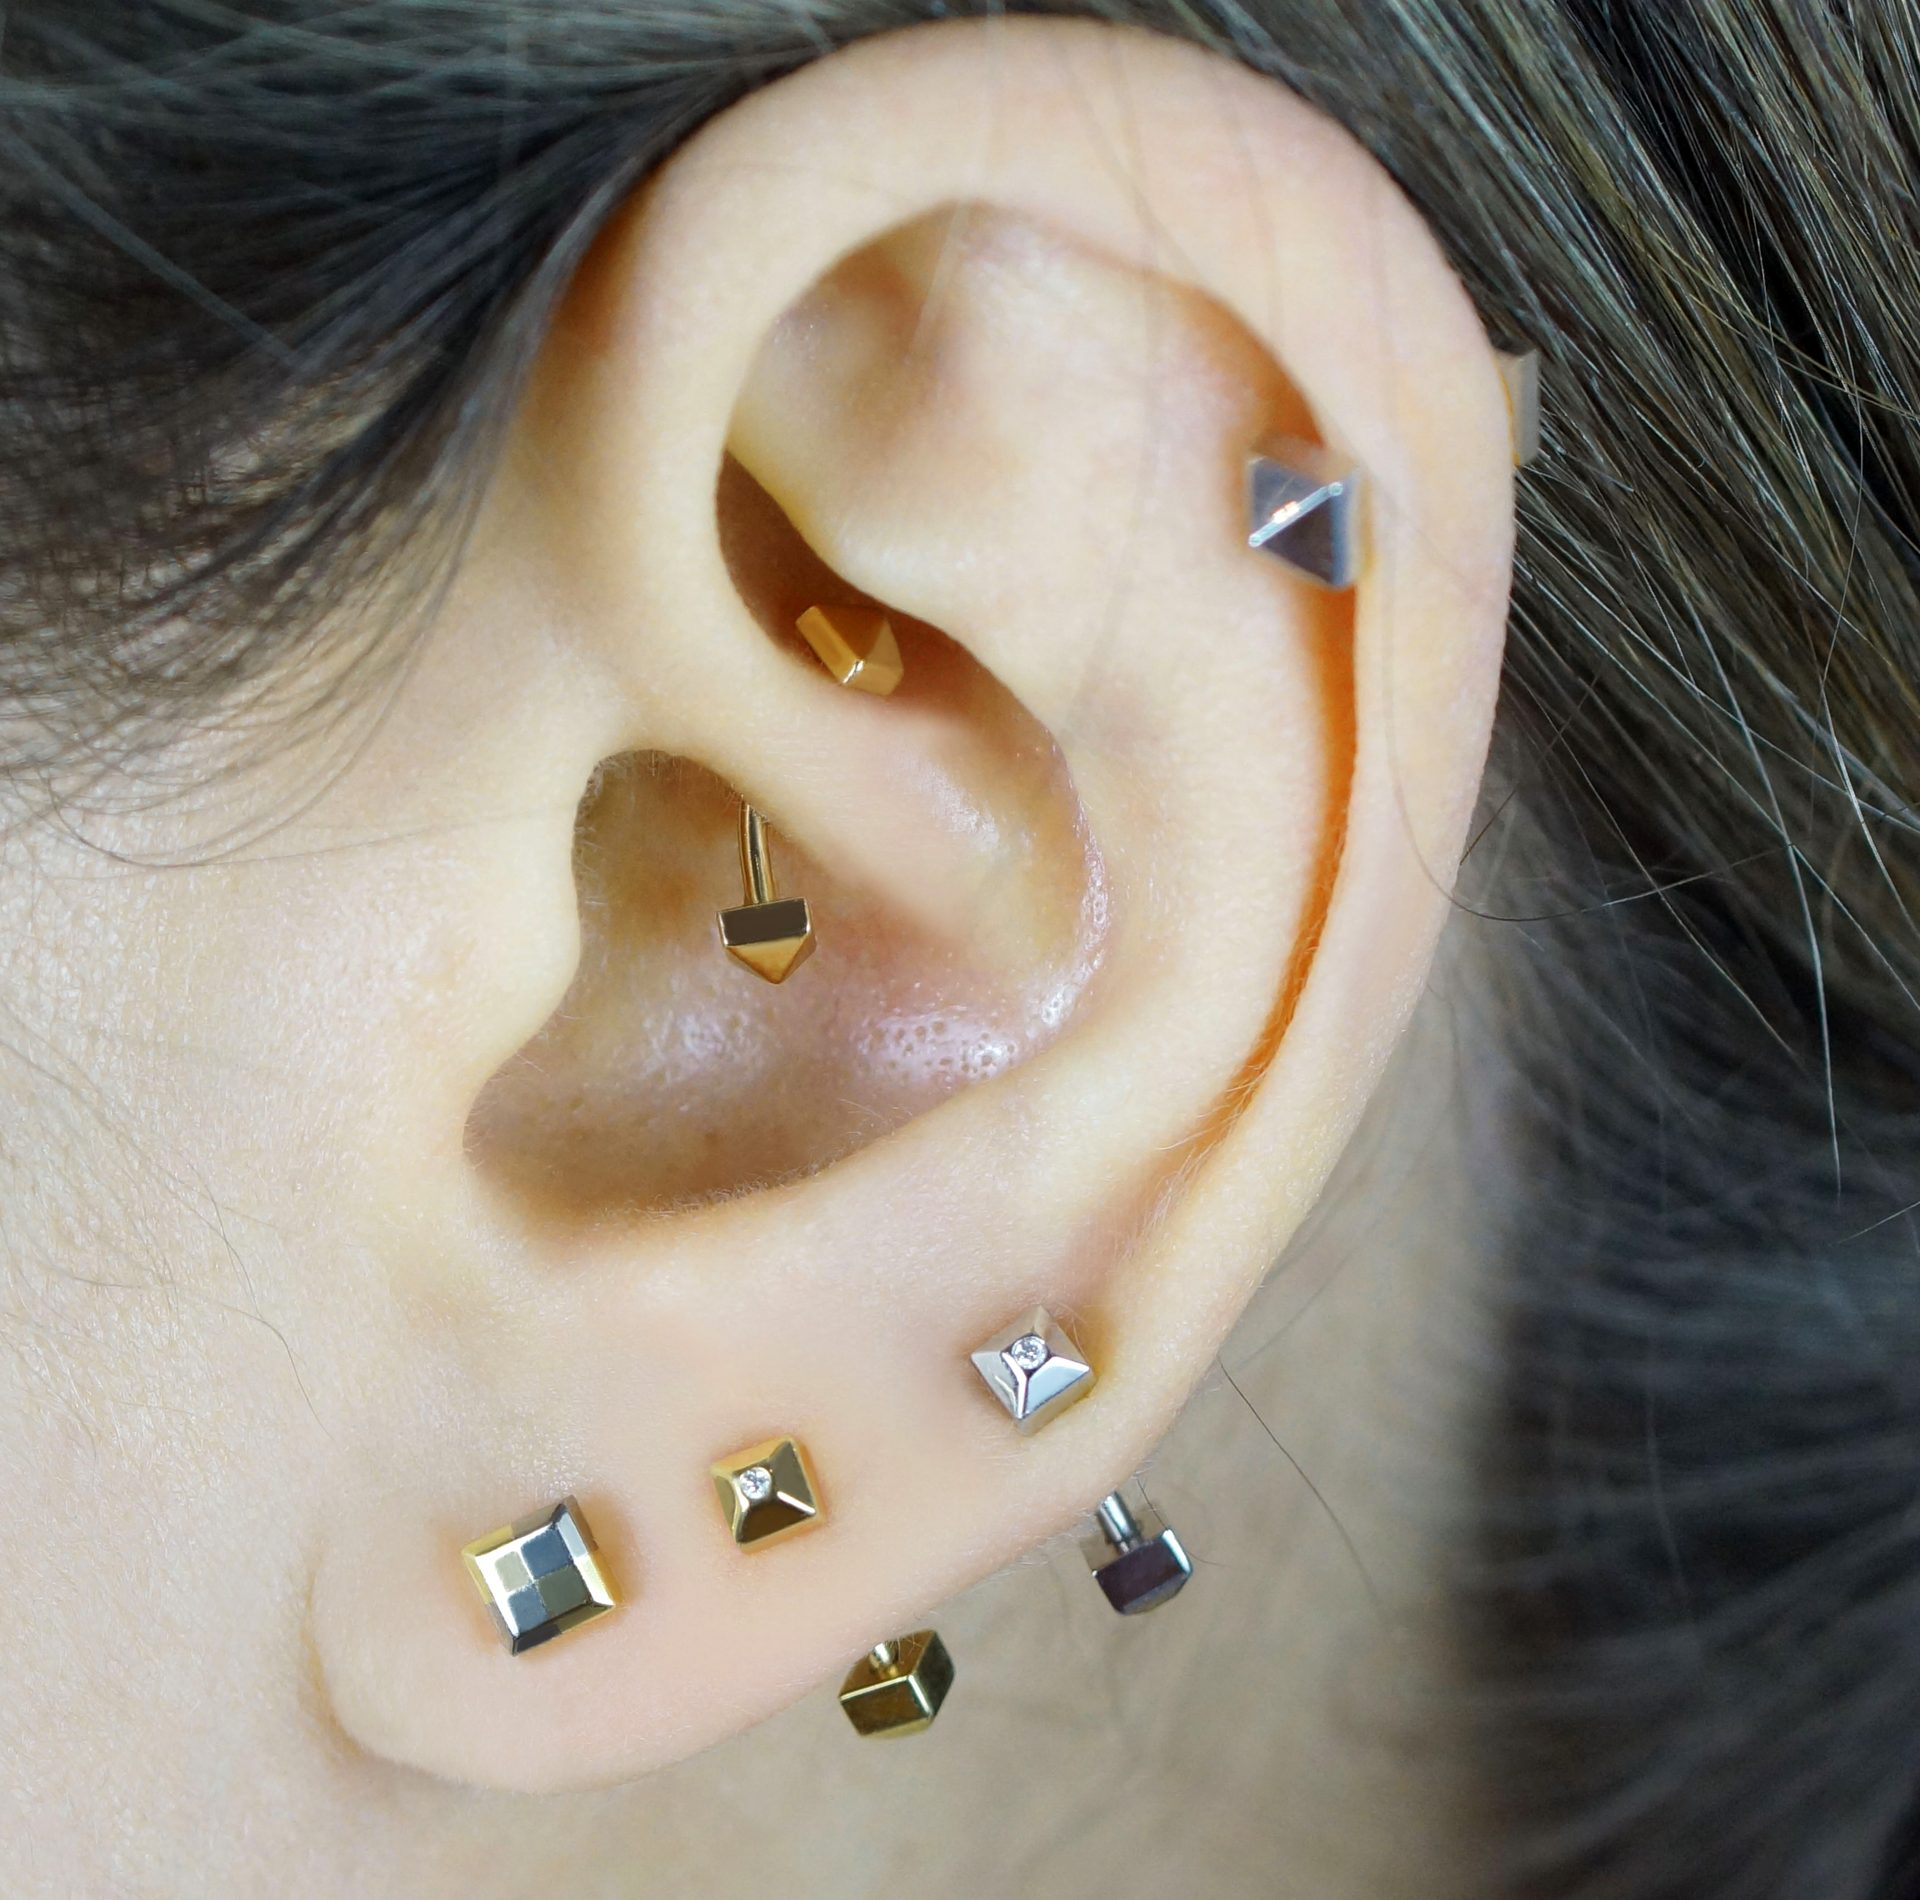 Unisex cartilage piercing earring handmade from 18k yellow/white gold